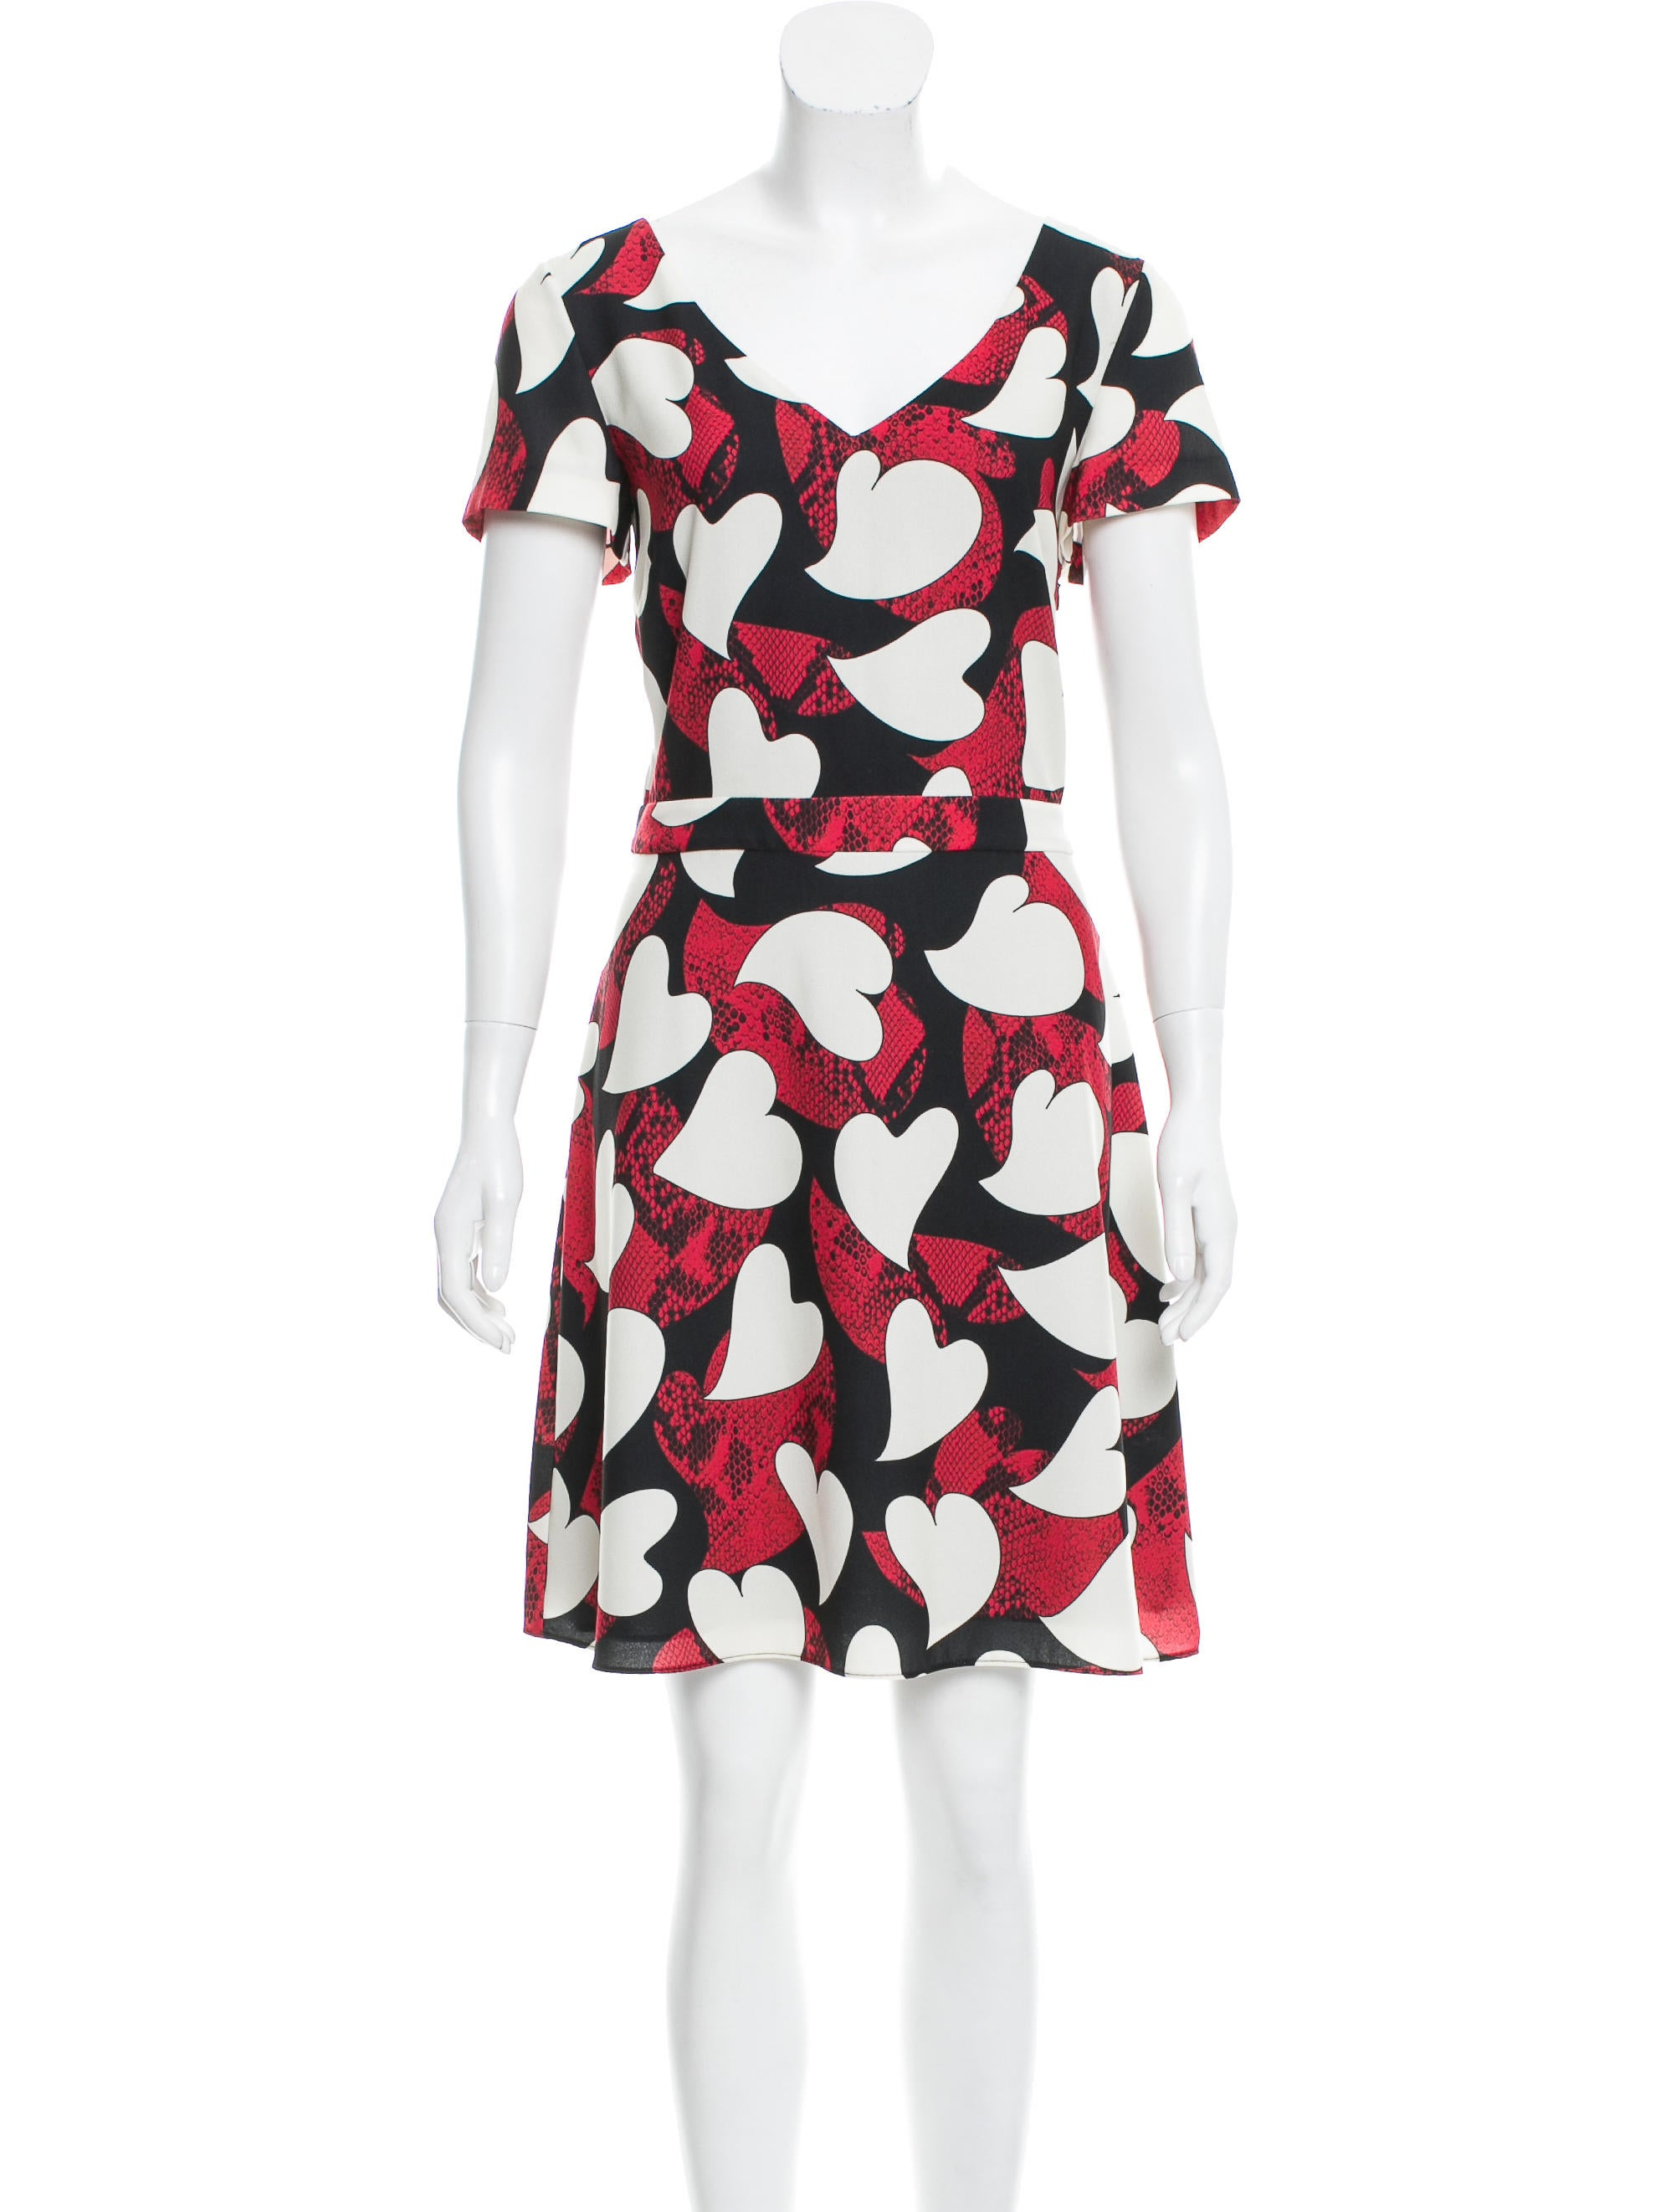 Boutique moschino printed knee length dress w tags for Boutique labels clothing